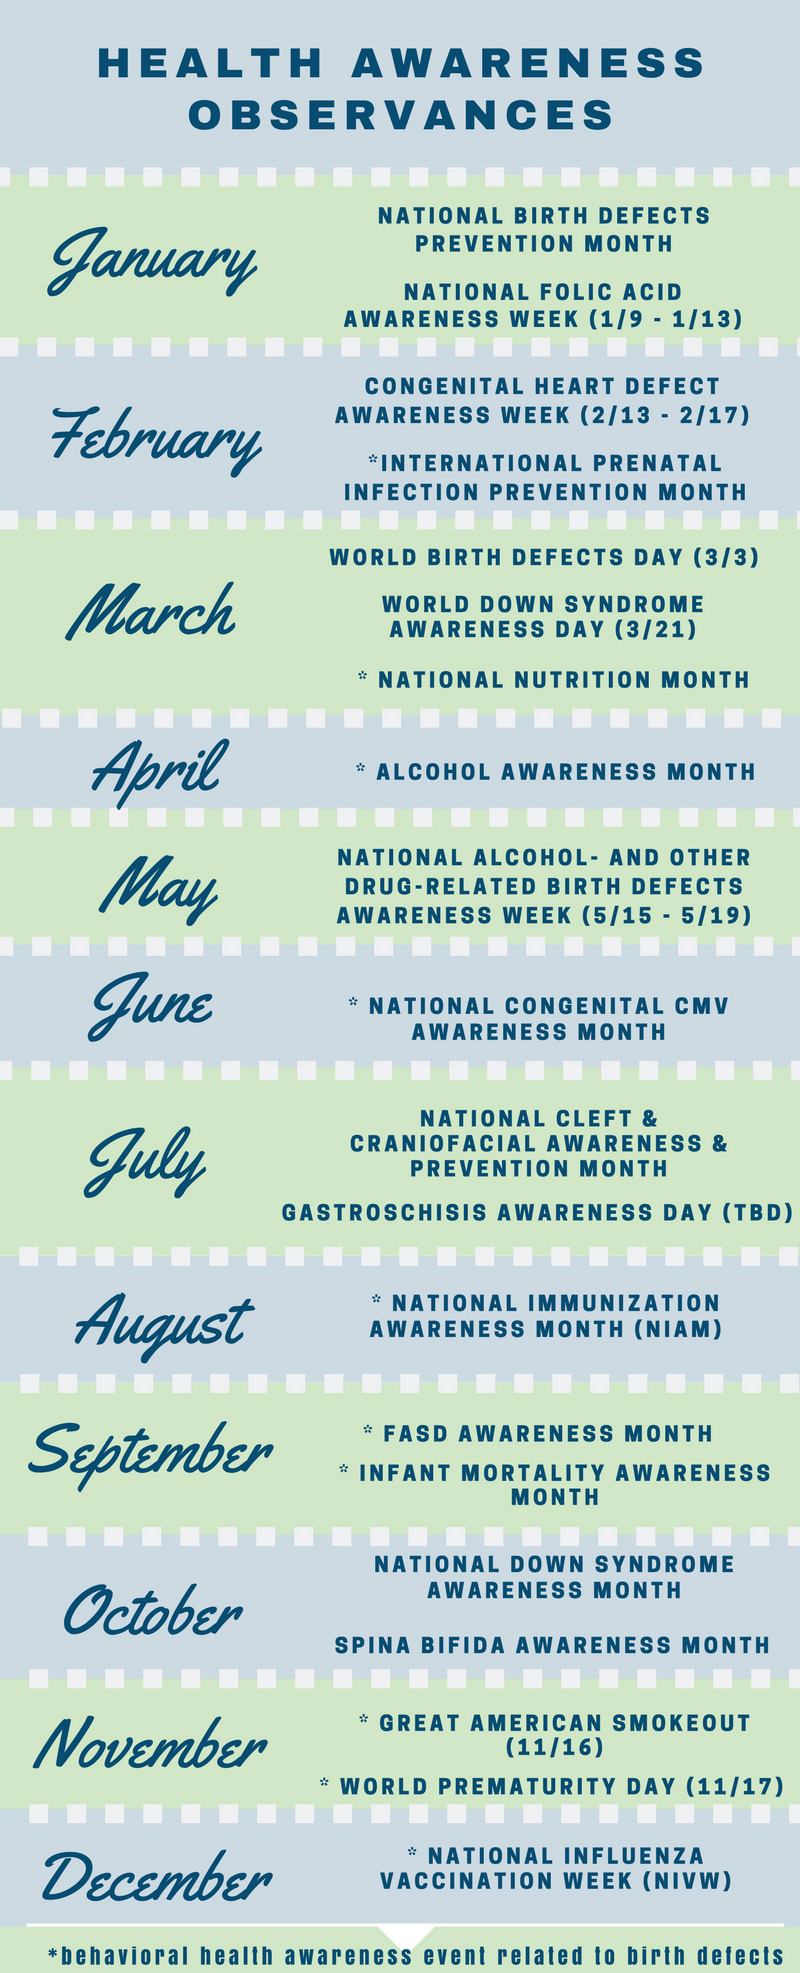 Monthly Calendar Health Awareness : National birth defects prevention month